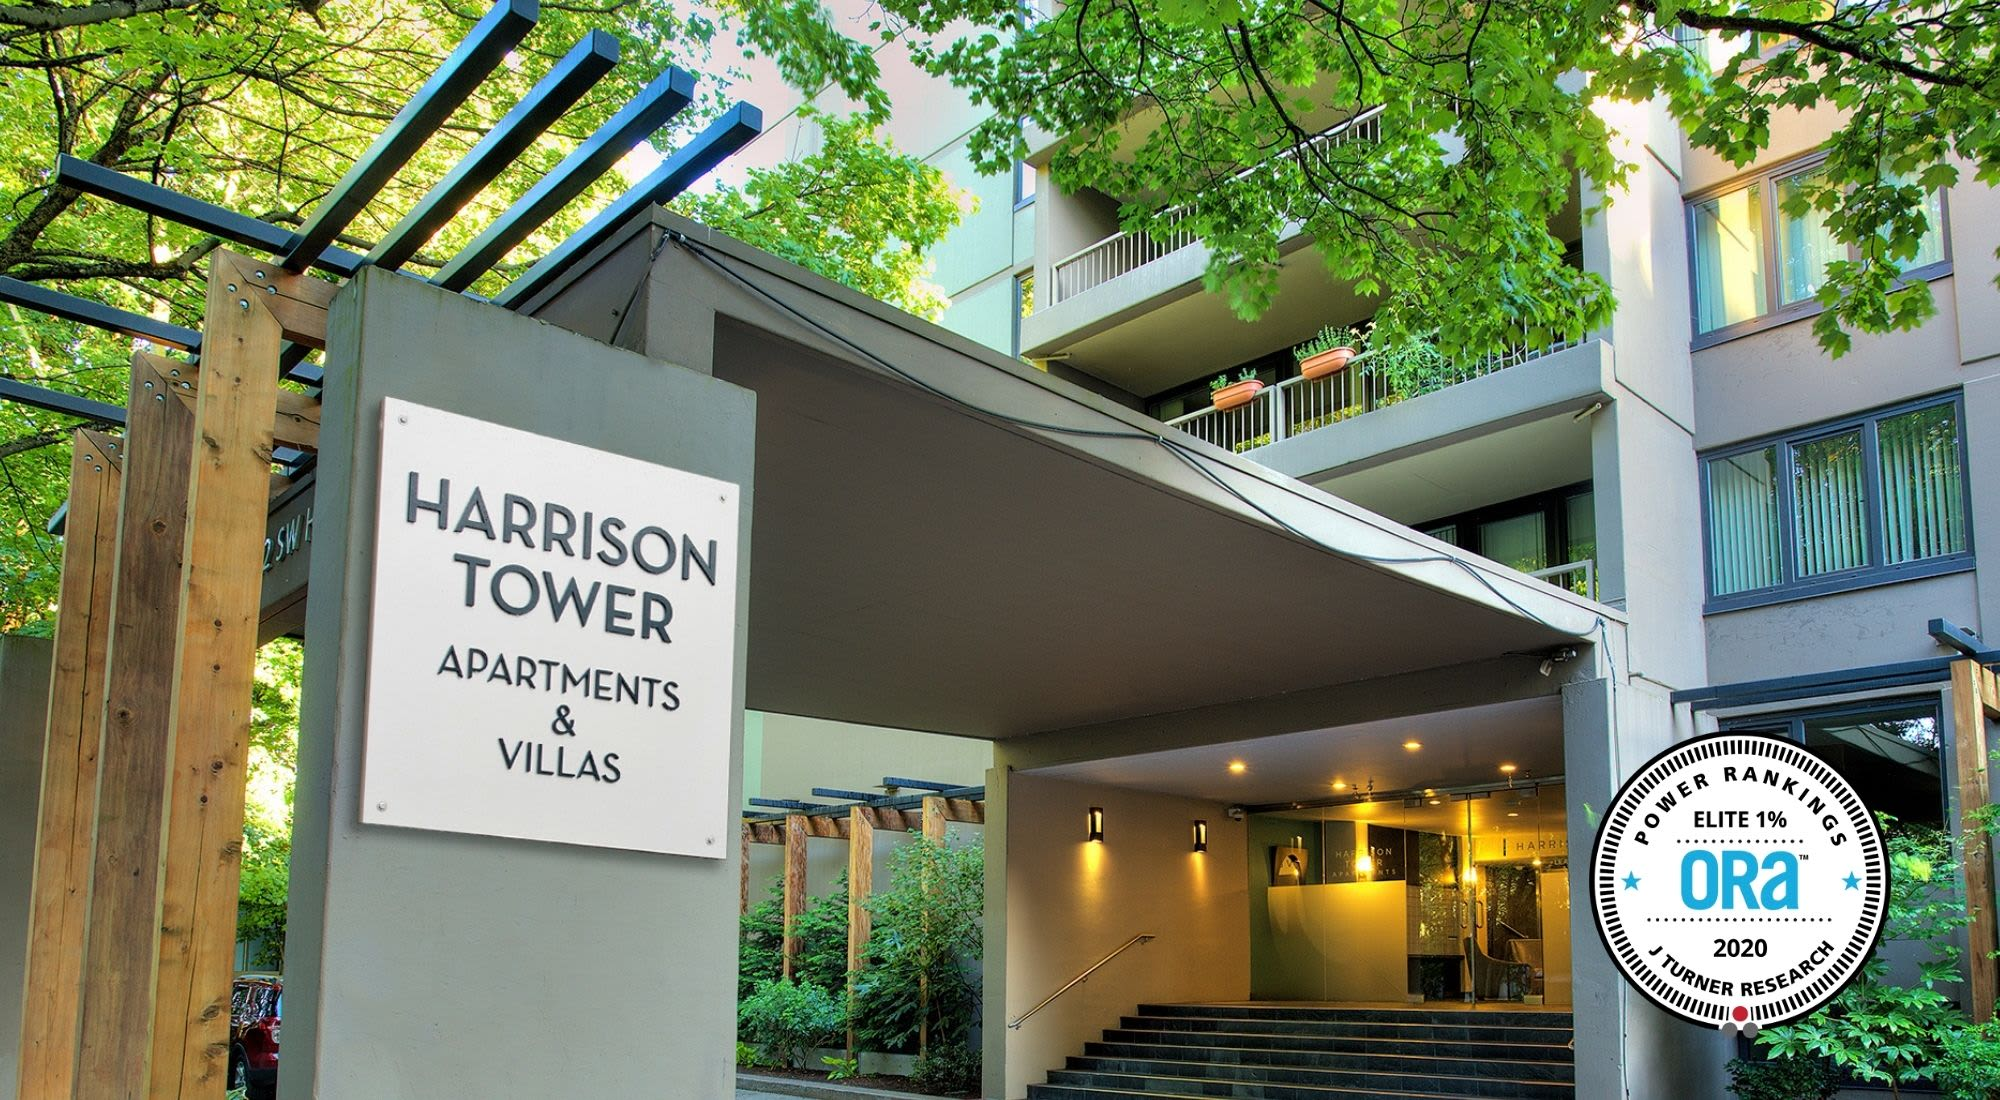 Harrison Tower apartments in Portland, Oregon